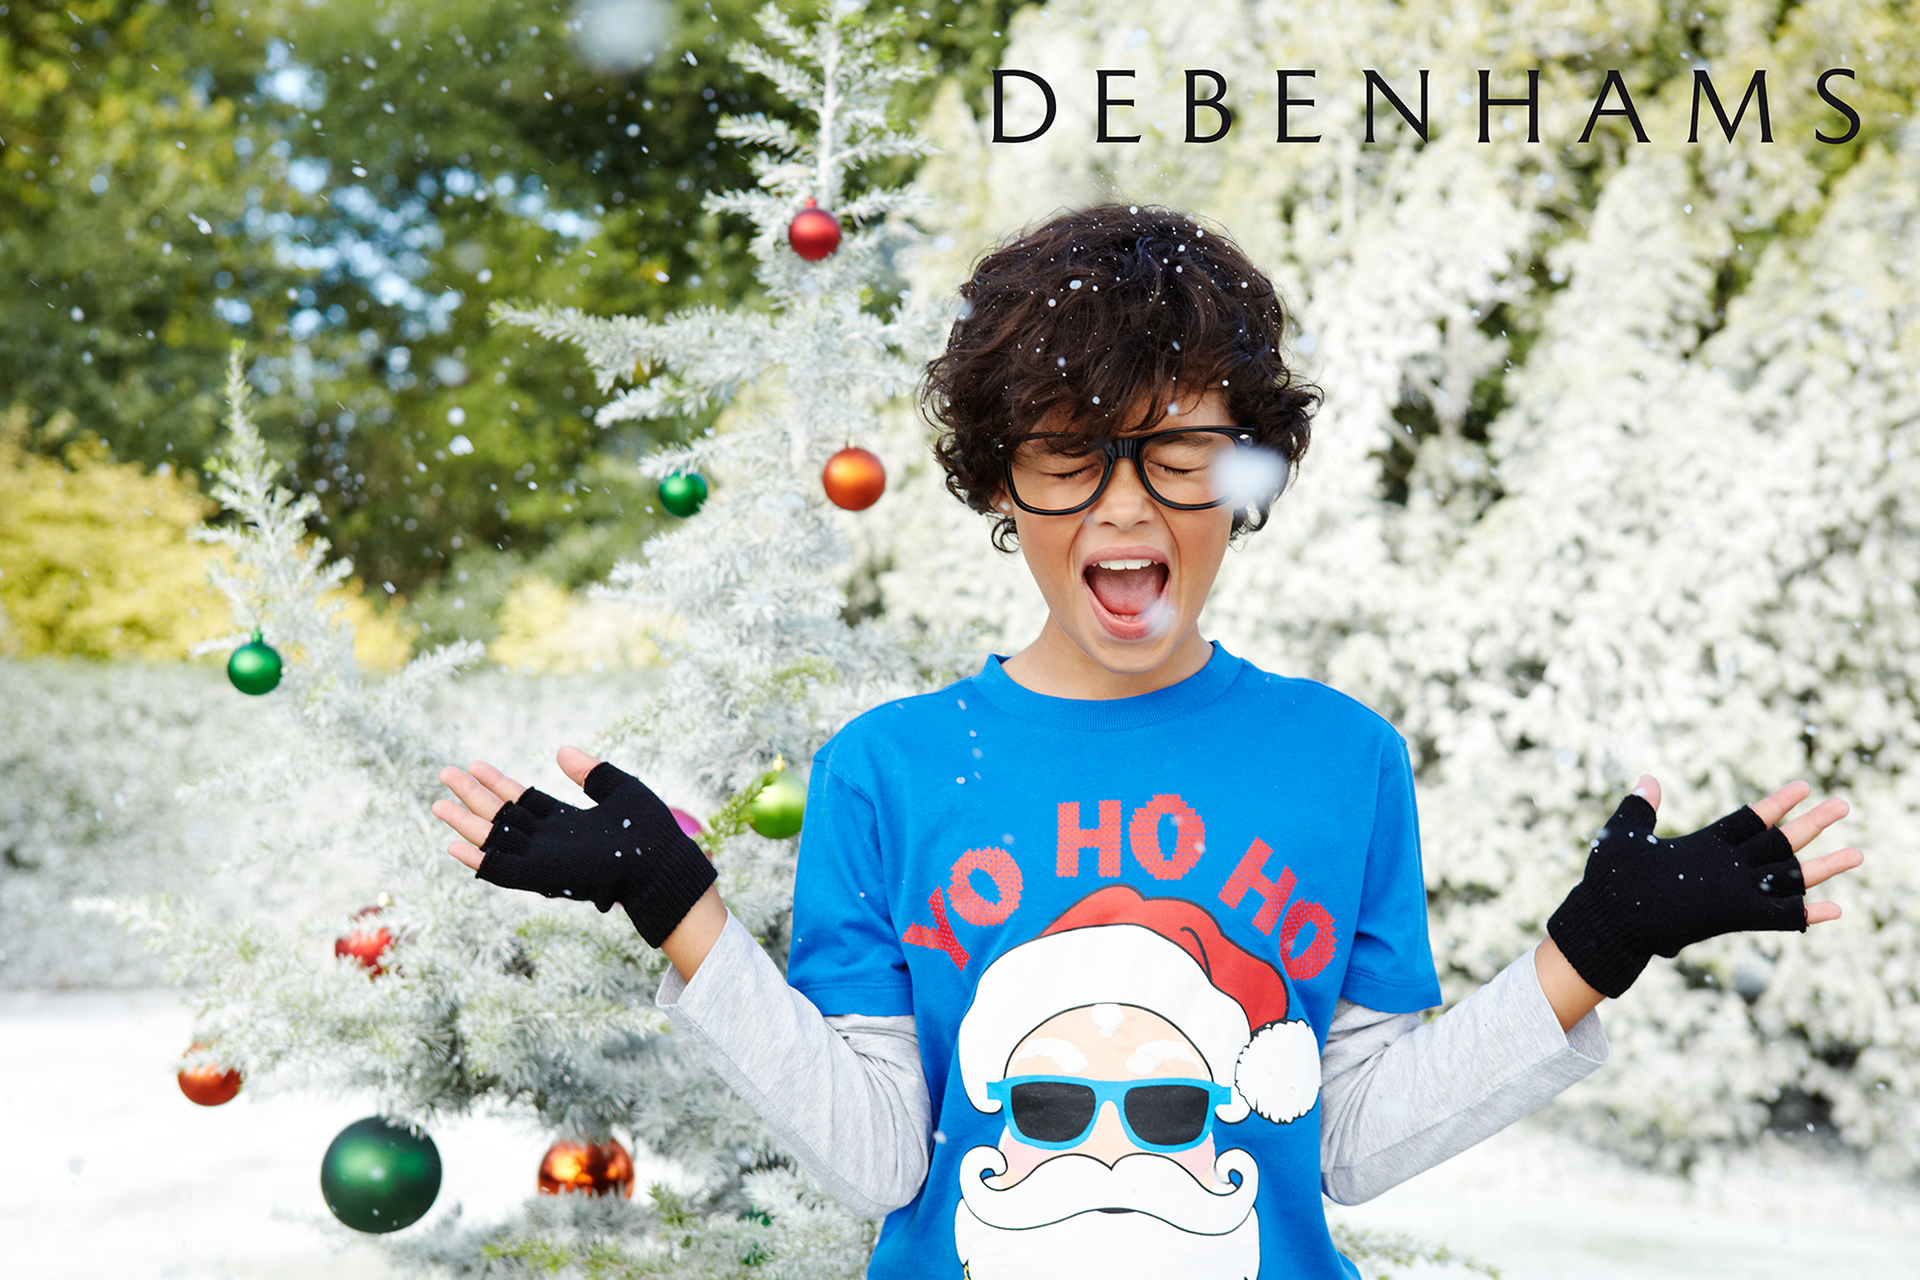 Debenhams kids fashion campaign christmas